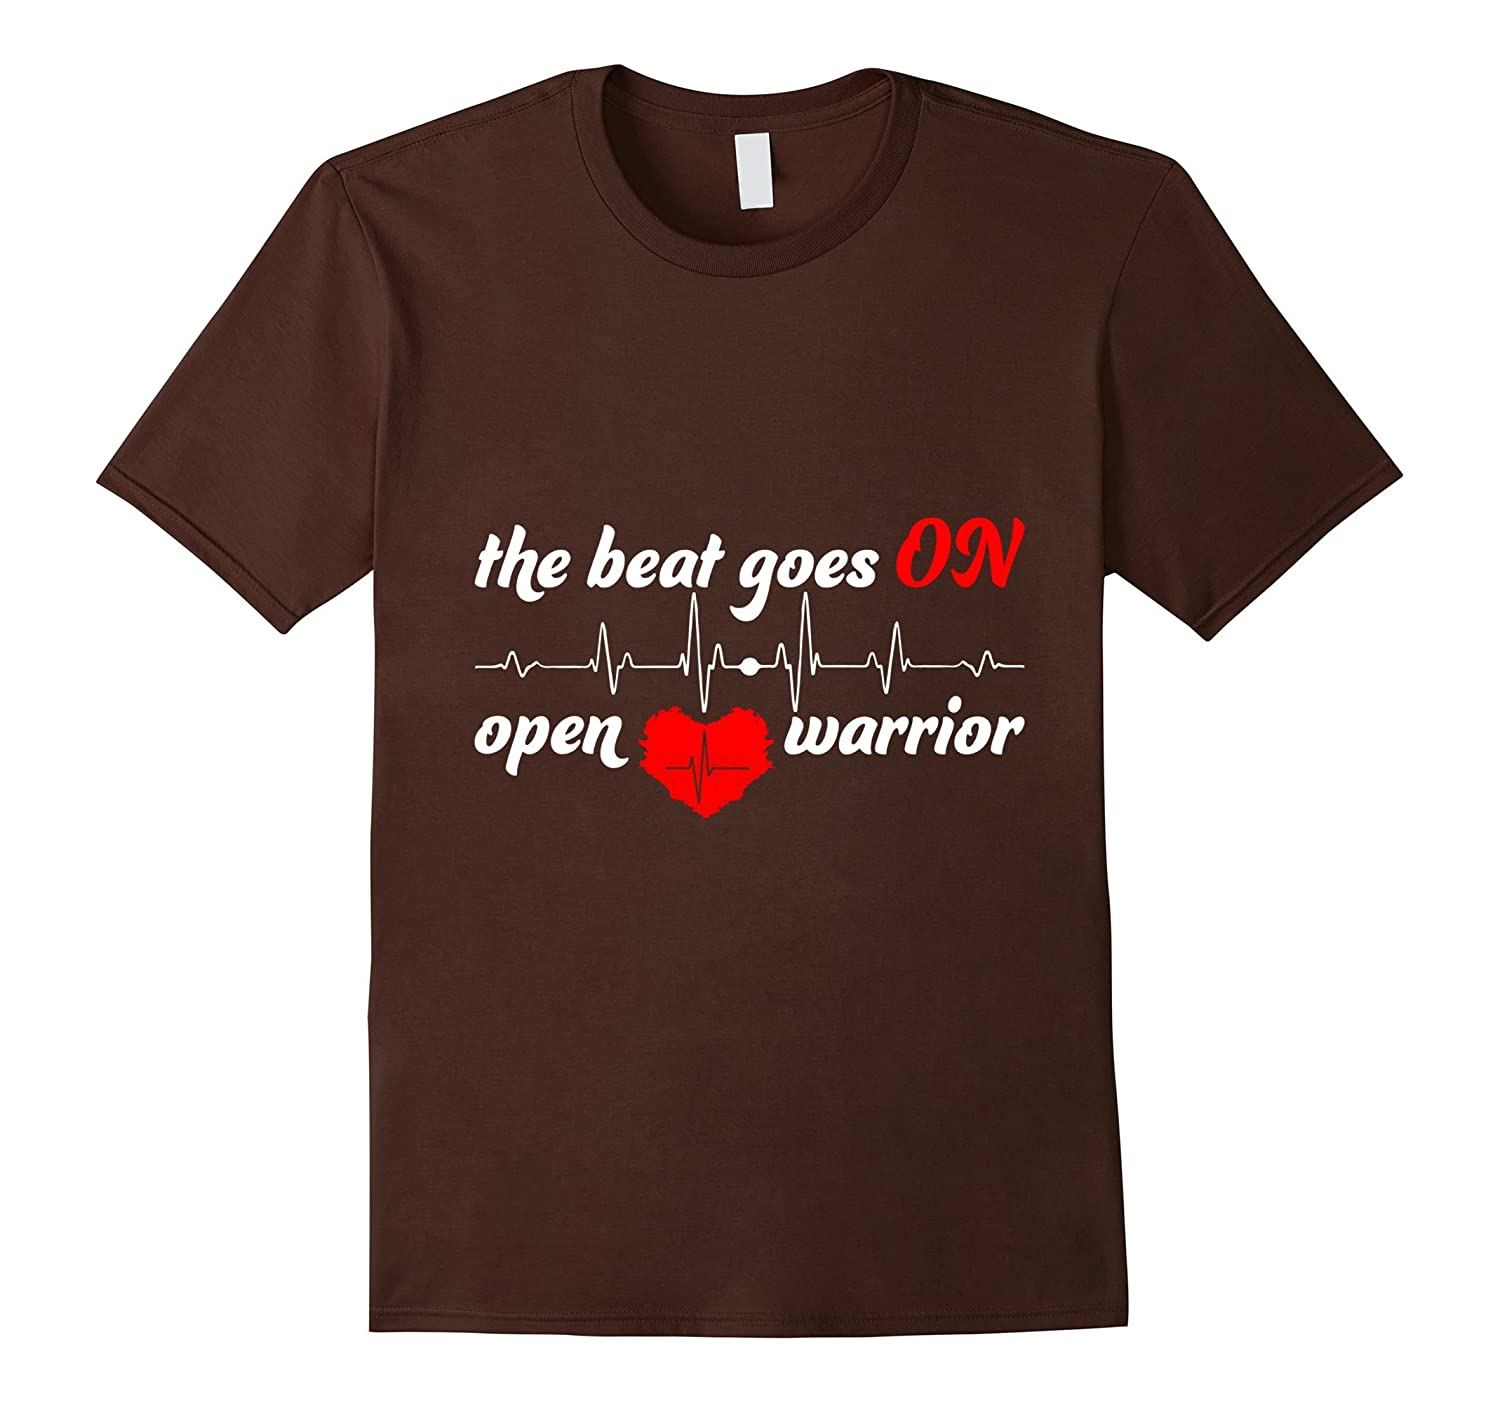 Post Heart Surgery Bypass Recovery Tshirt Open Heart Warrior-Teehay